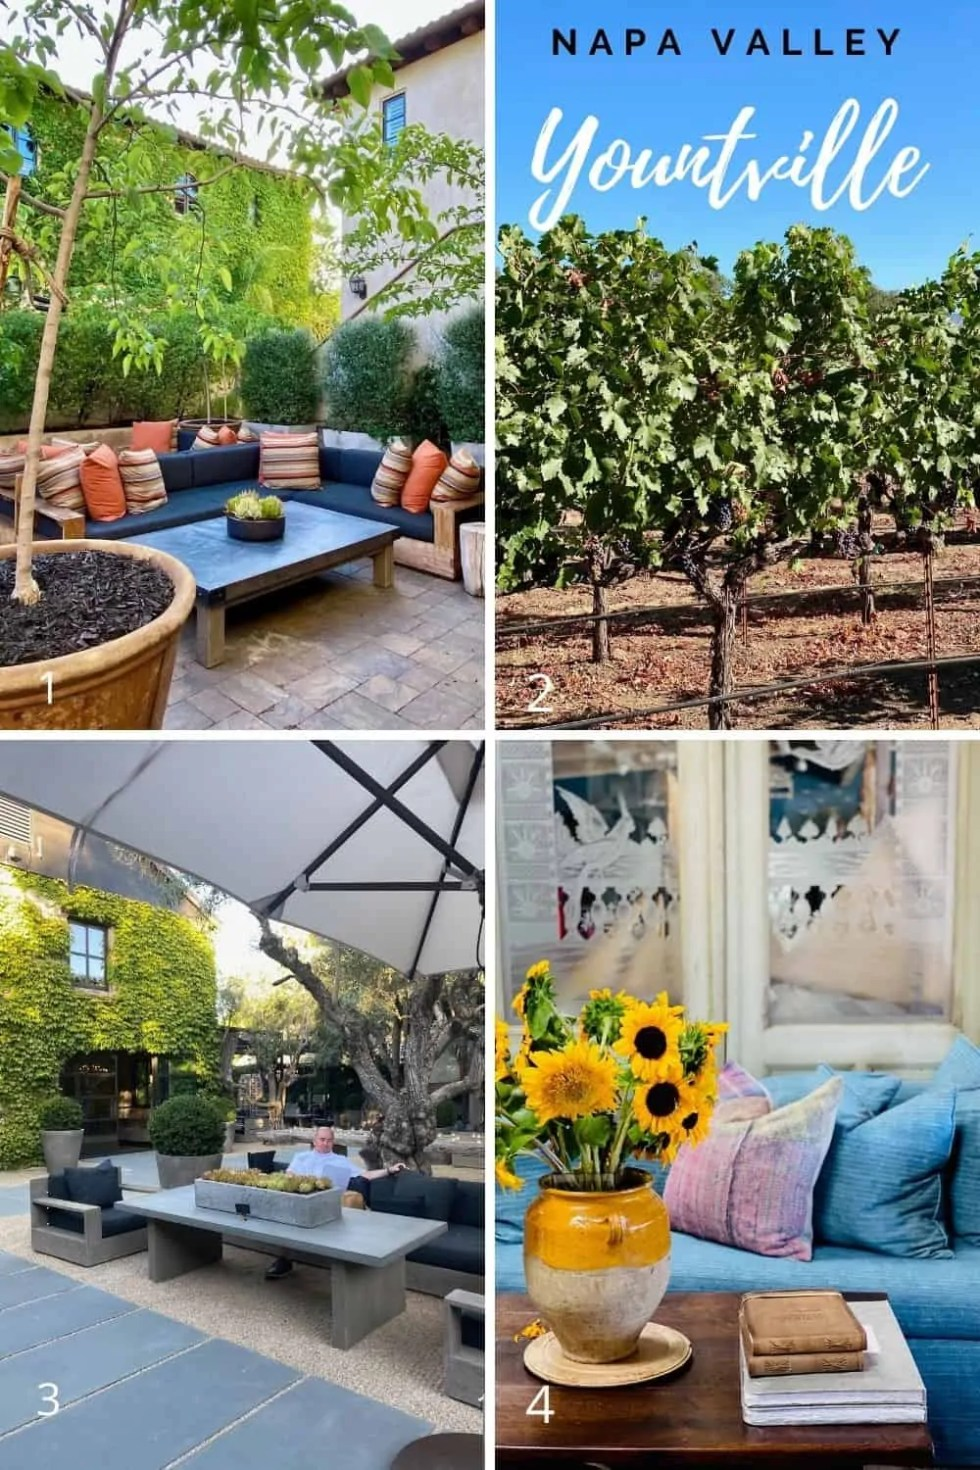 Places to go in Napa Valley